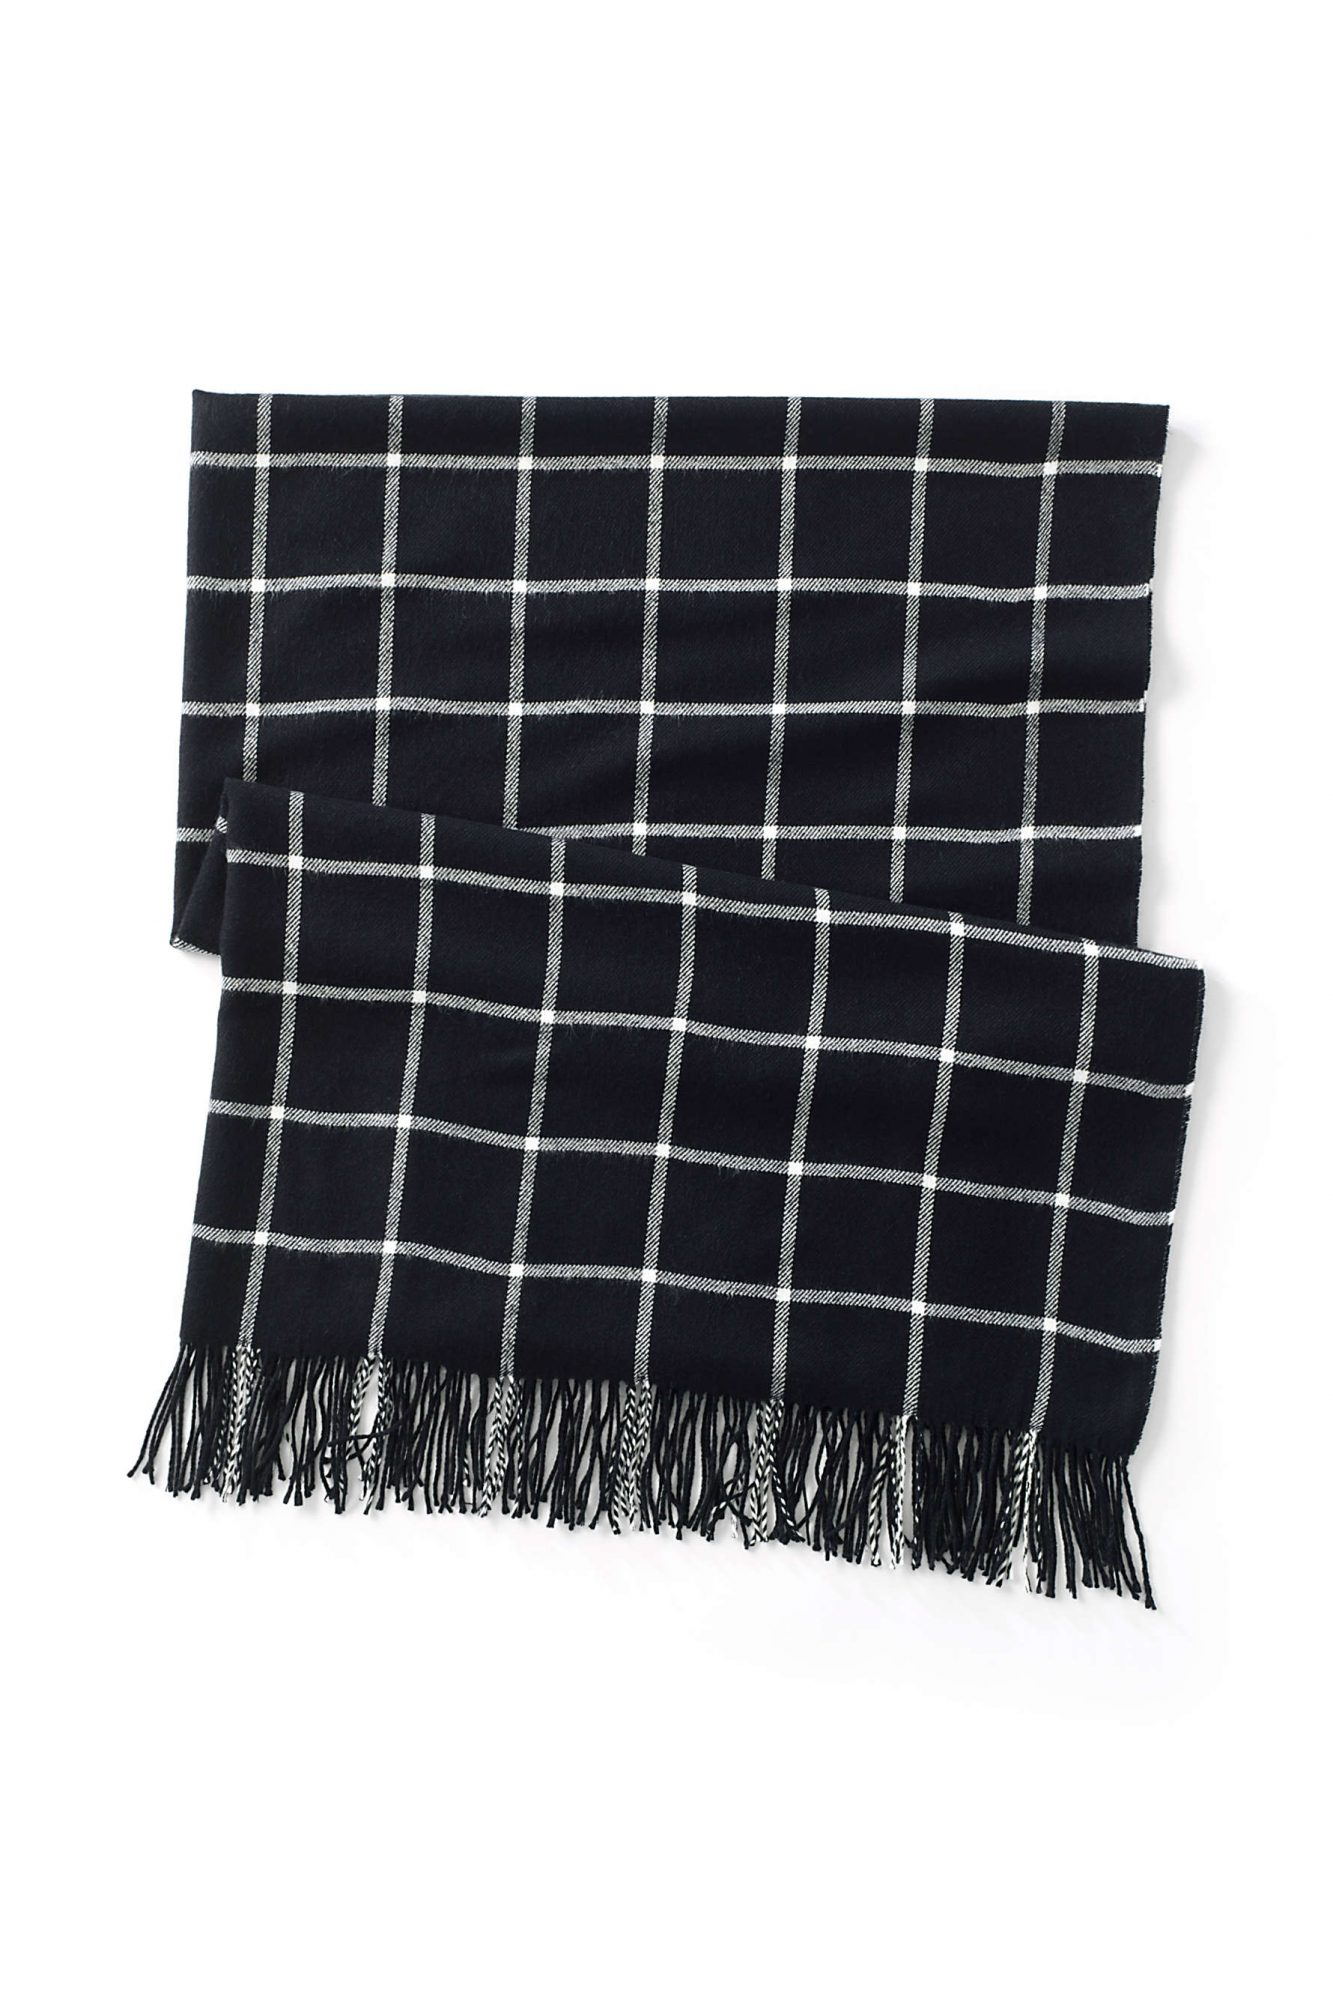 Lands End throw